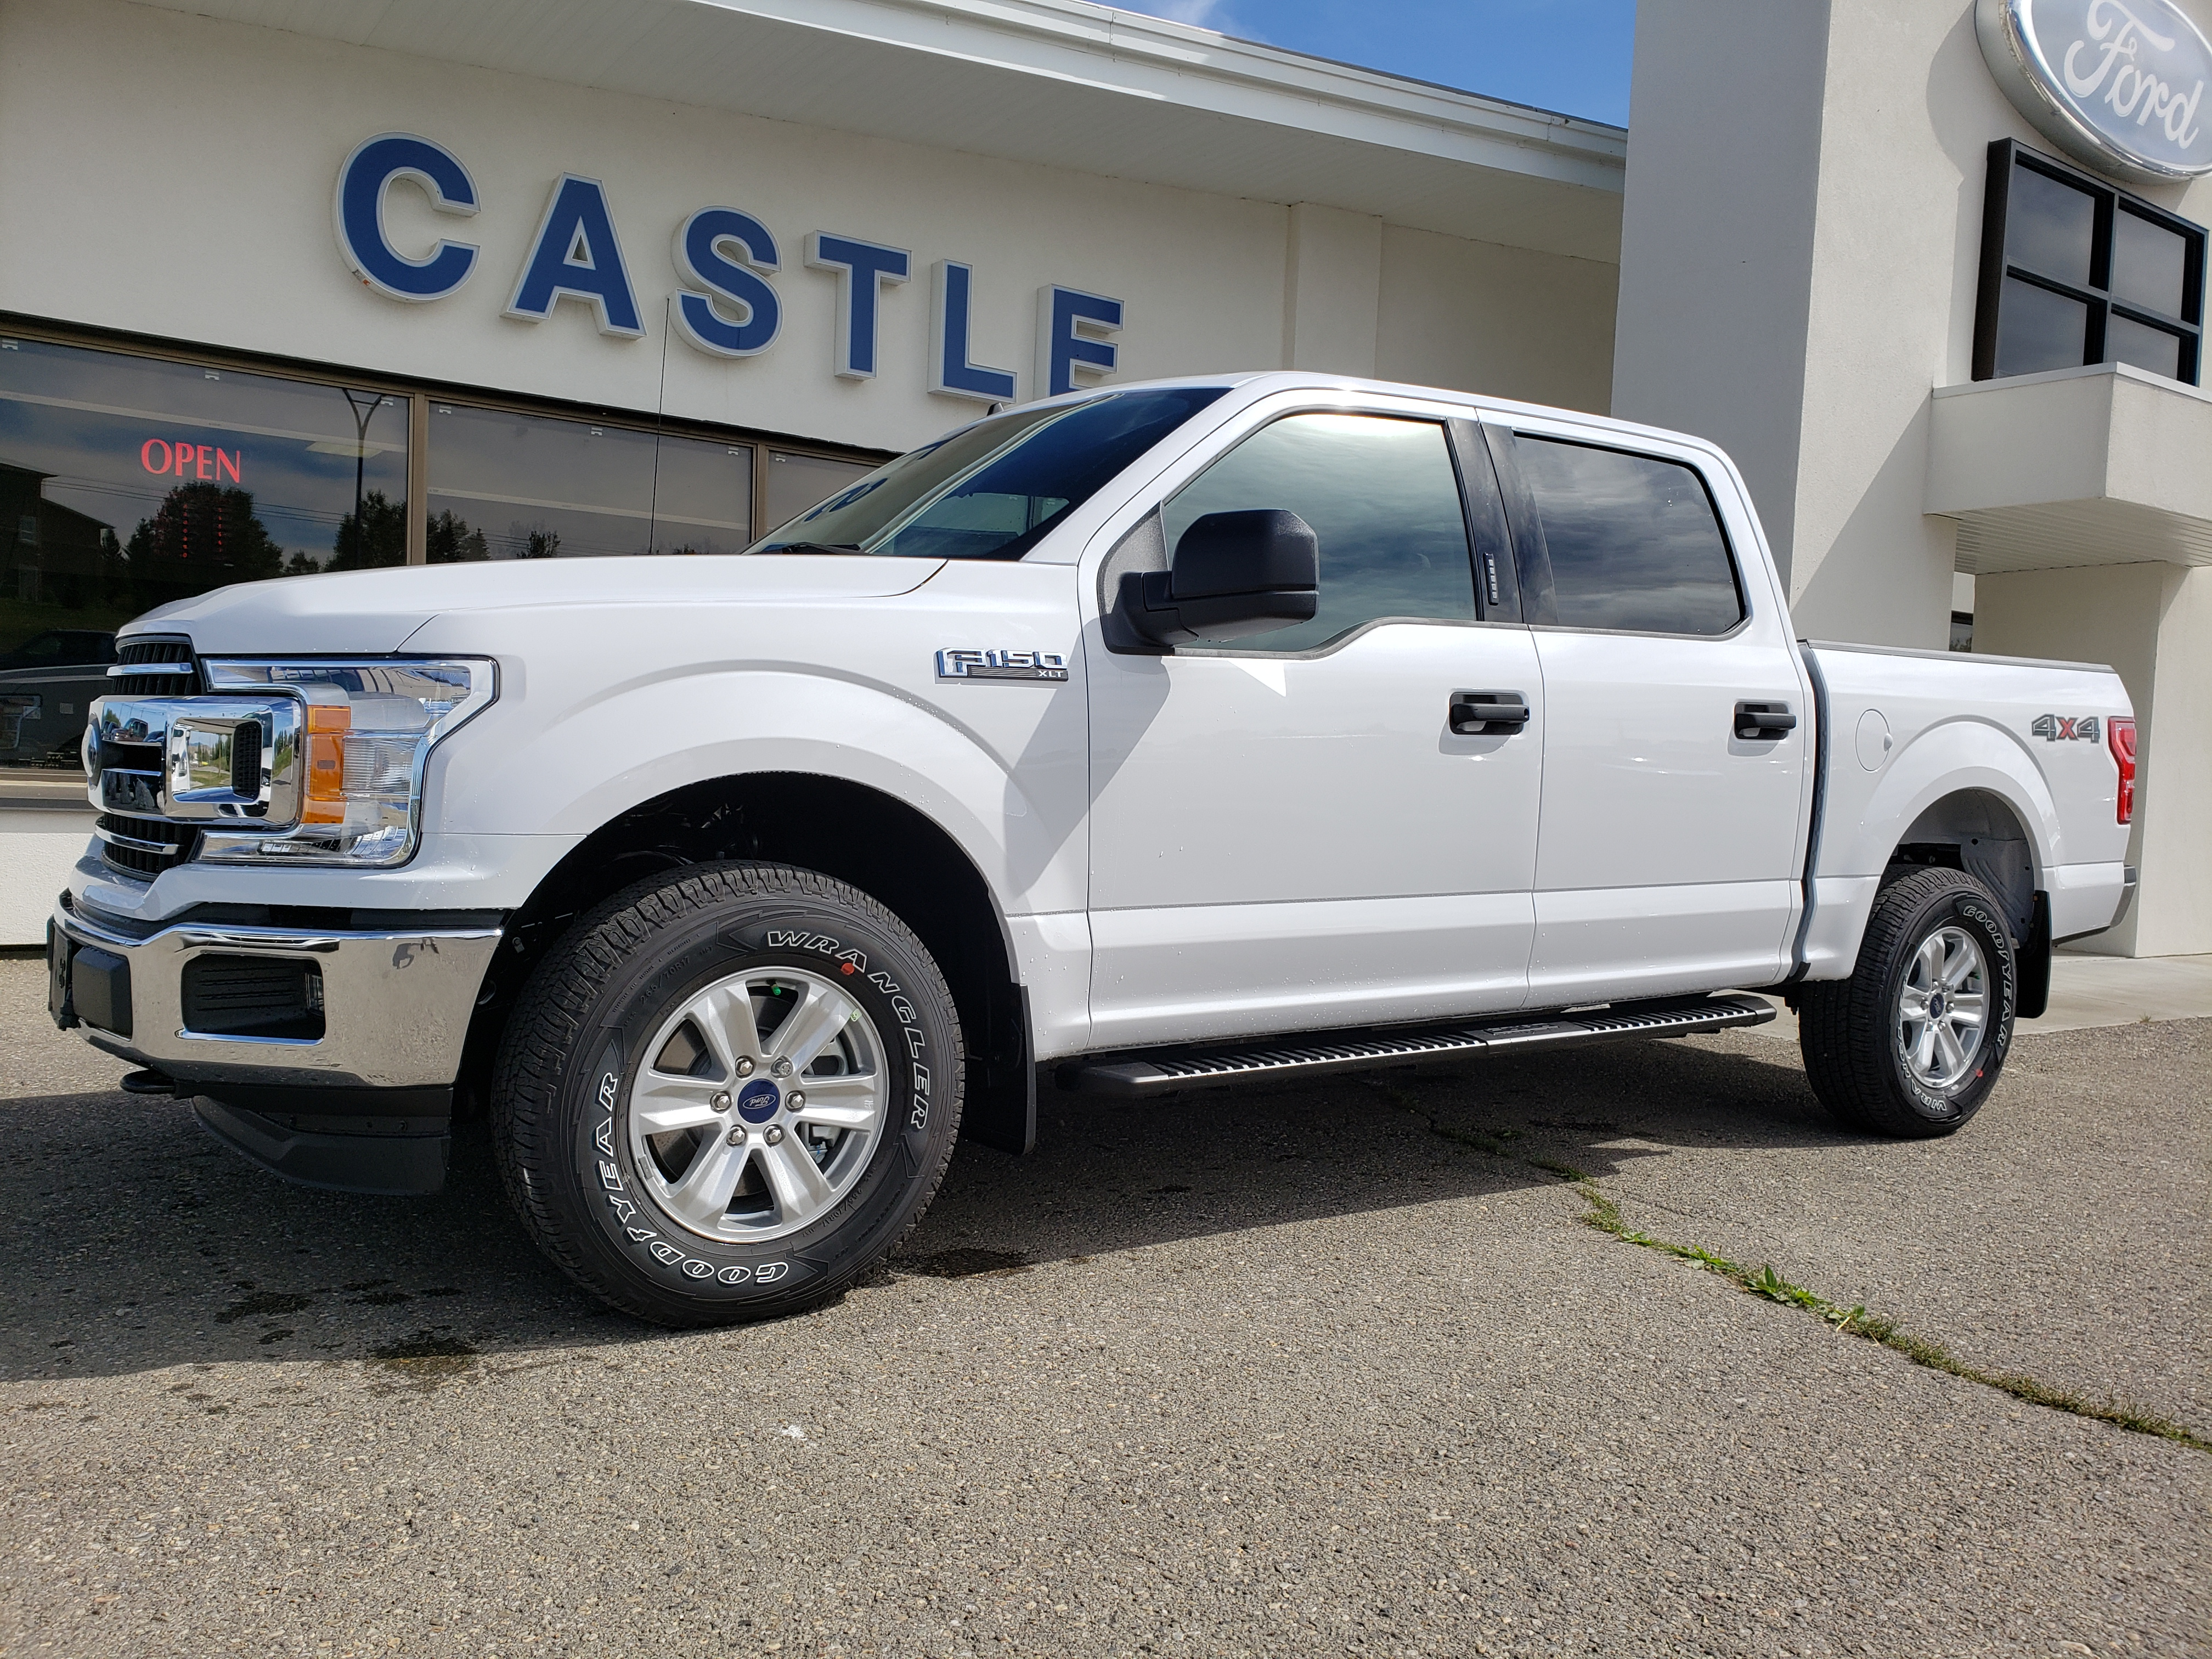 New Ford Vehicle for Sale in Pincher Creek | Castle Ford